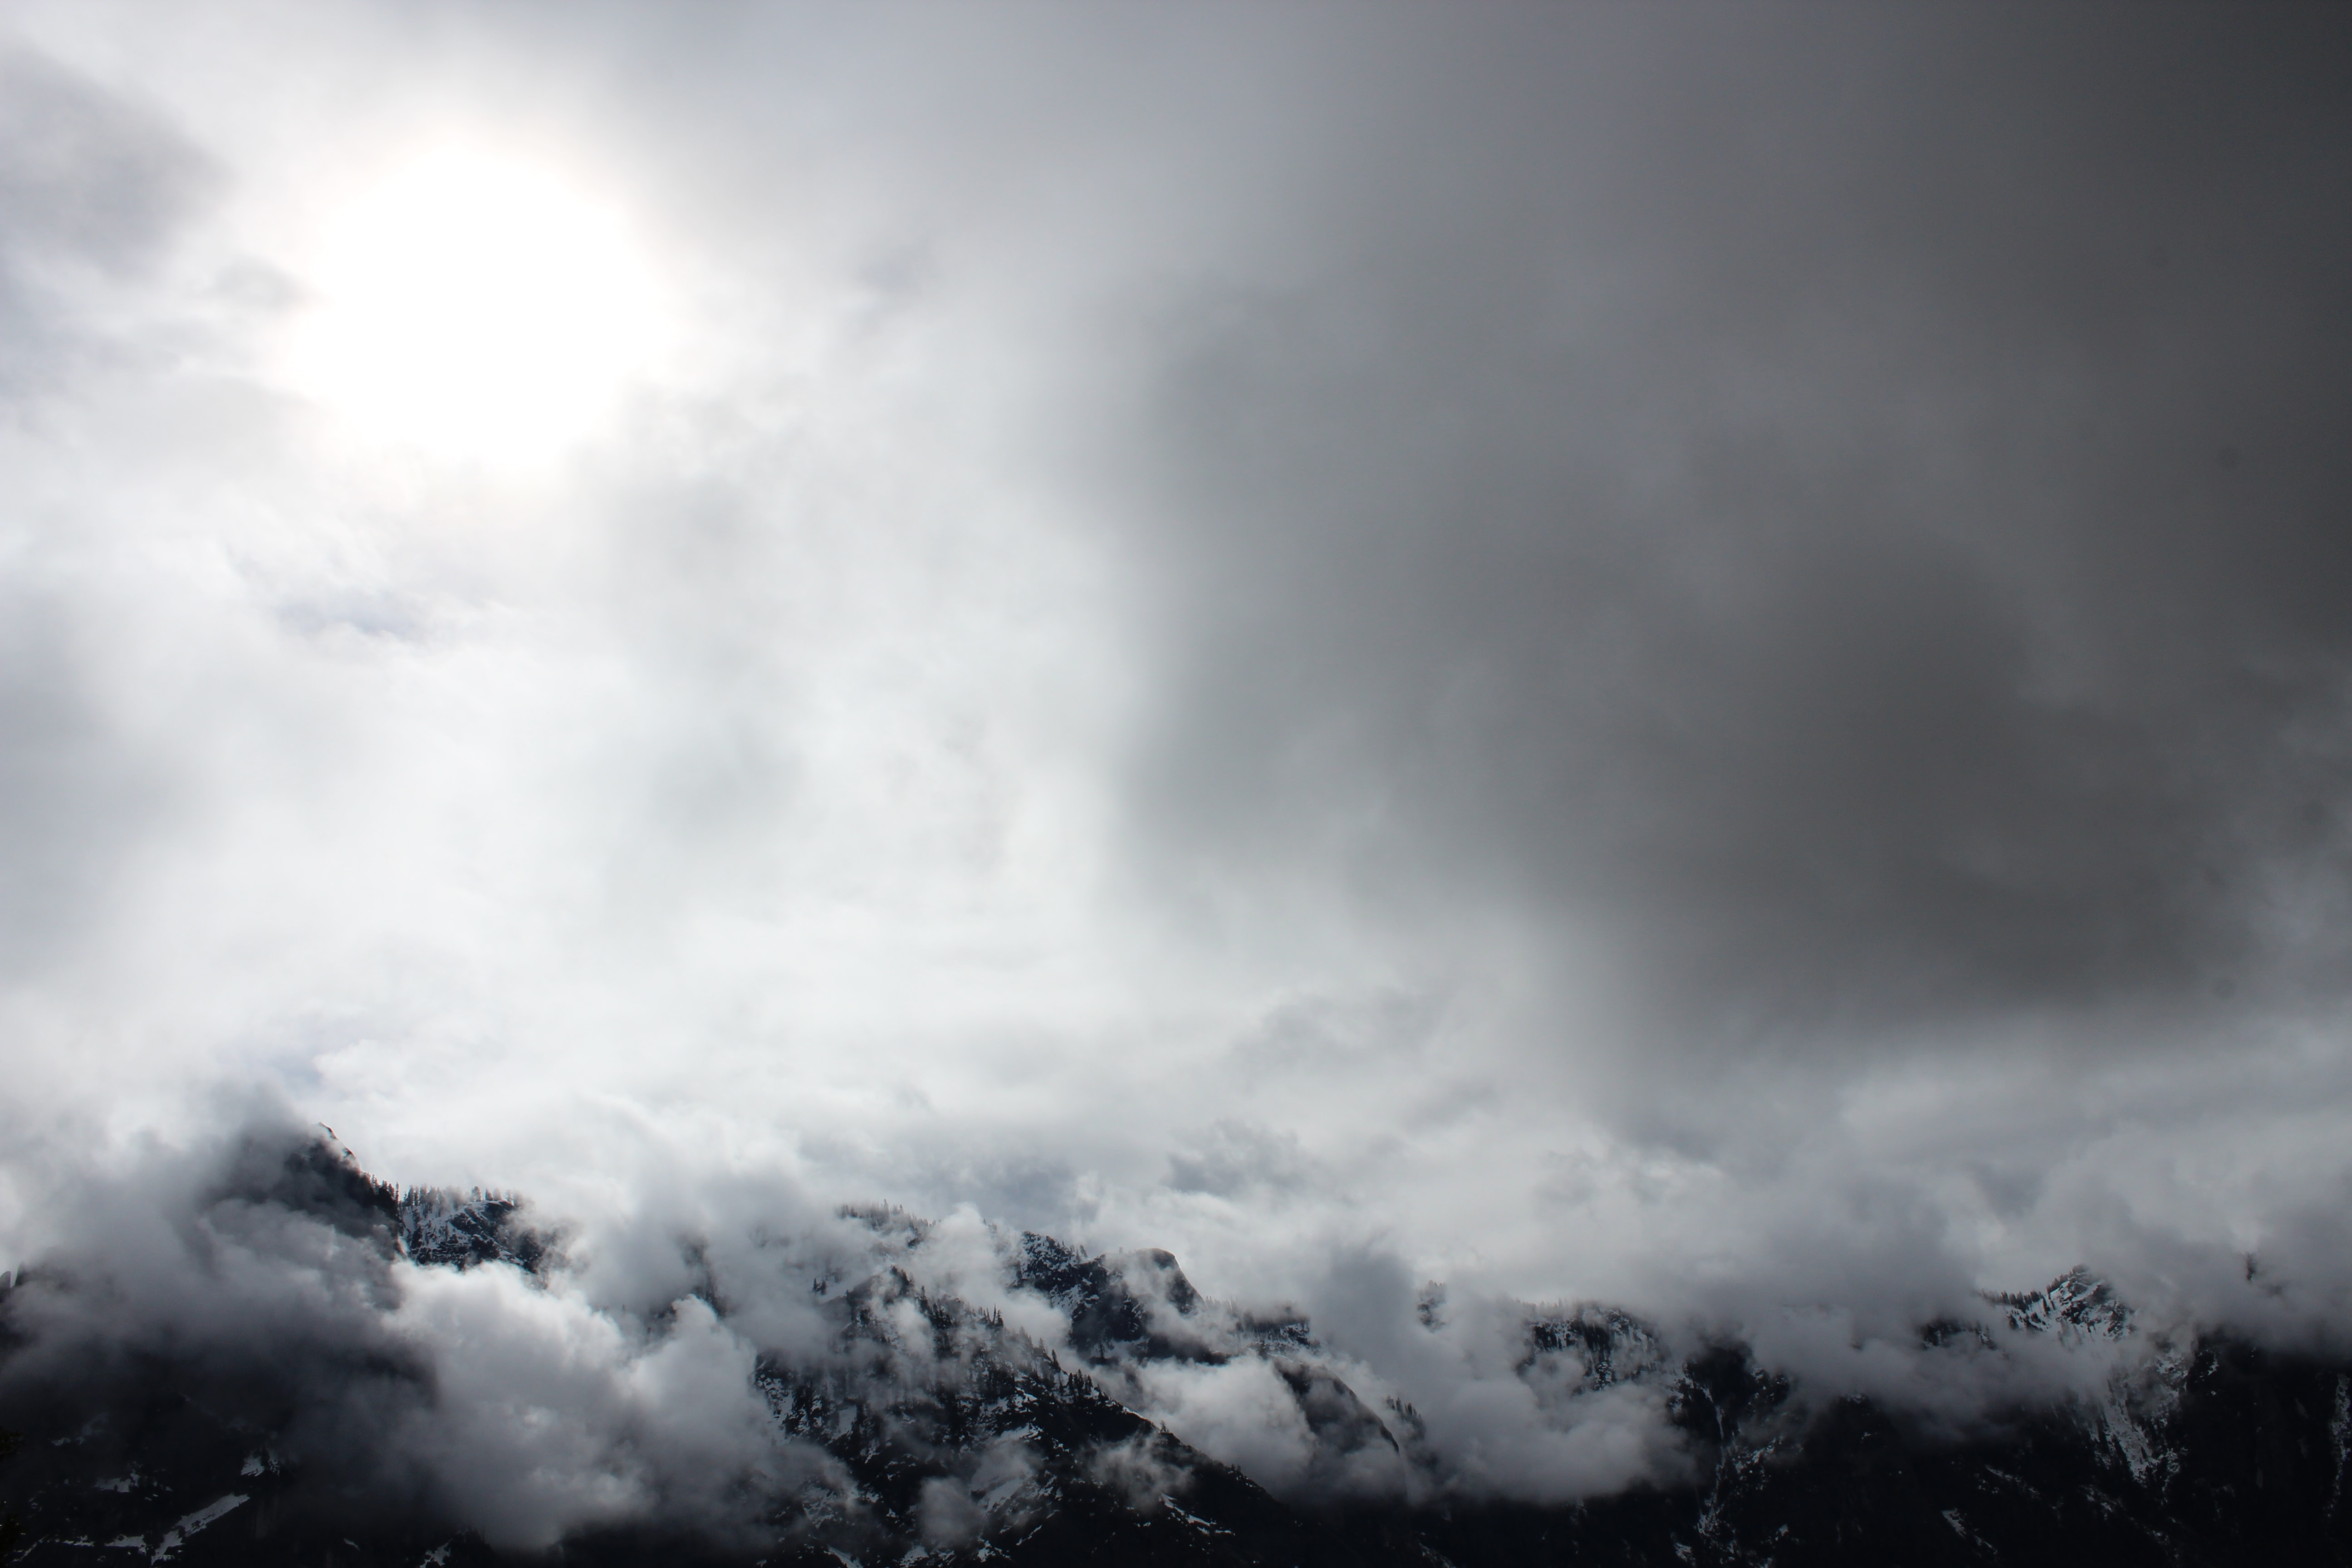 cloudy sky over alp mountain